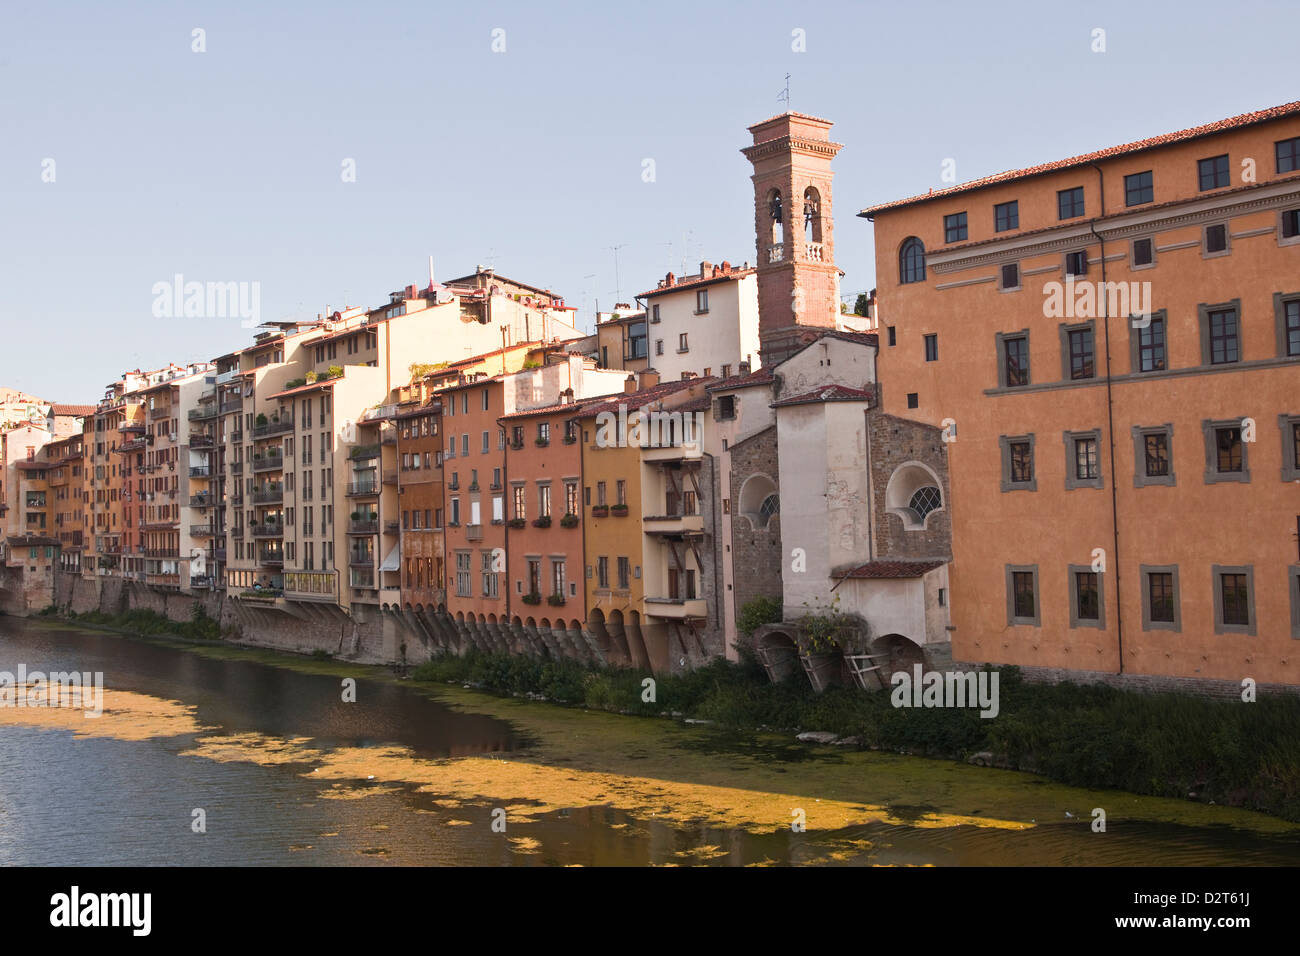 Buildings facing onto the River Arno, Florence, Tuscany, Italy, Europe - Stock Image